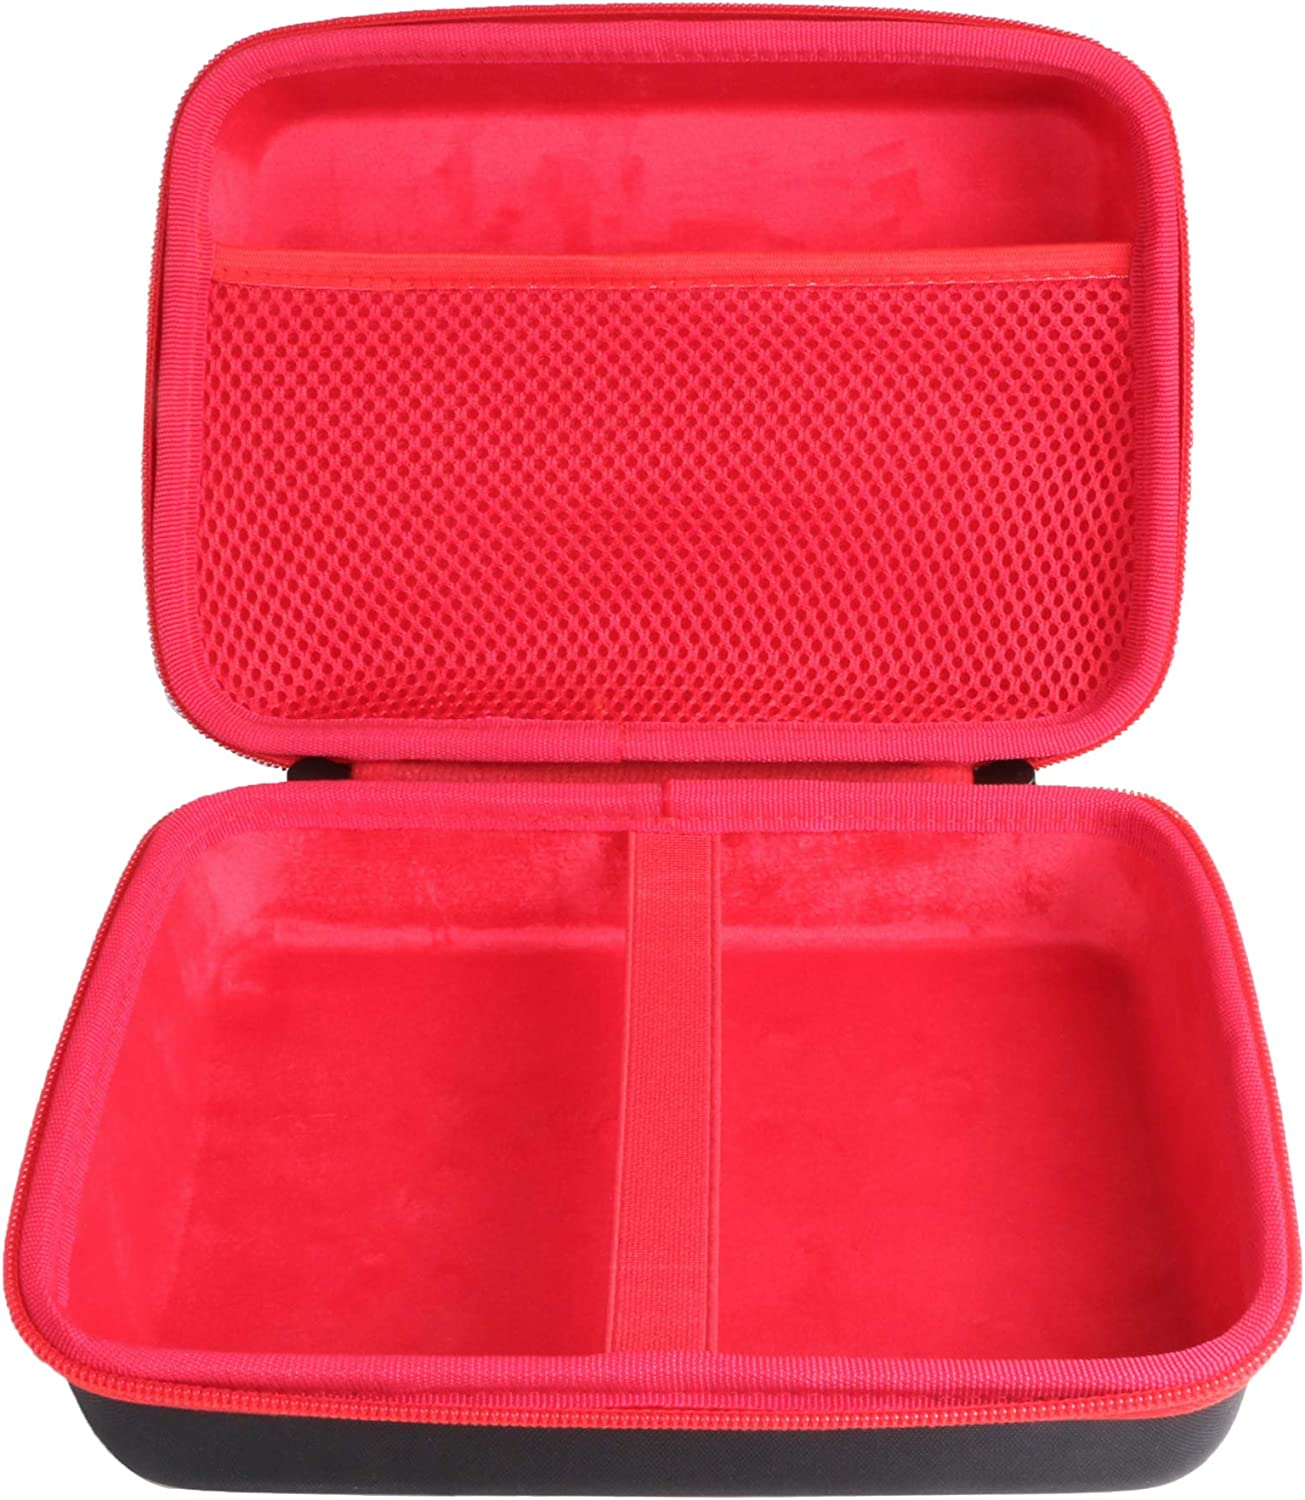 only case Carrying Case for Focusrite Scarlett Solo 3rd Gen USB Audio Interface by Aenllosi